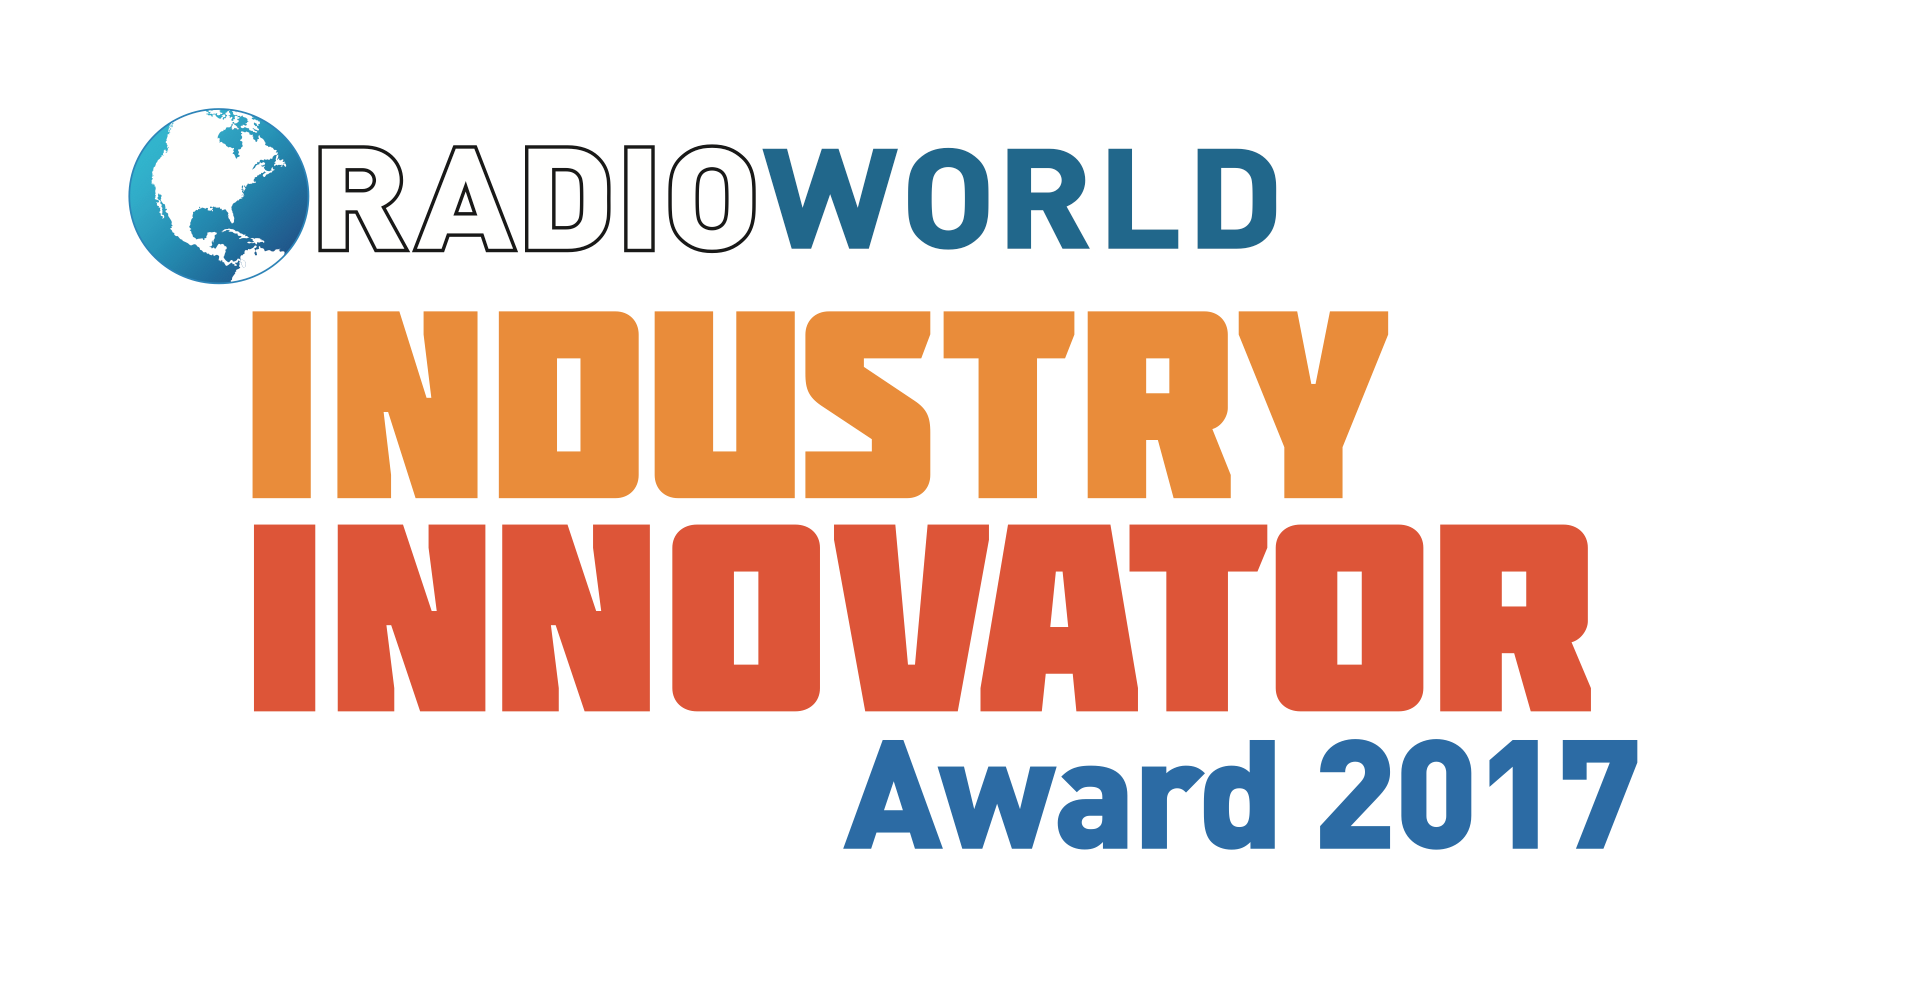 Radio World Industry Innovator Award